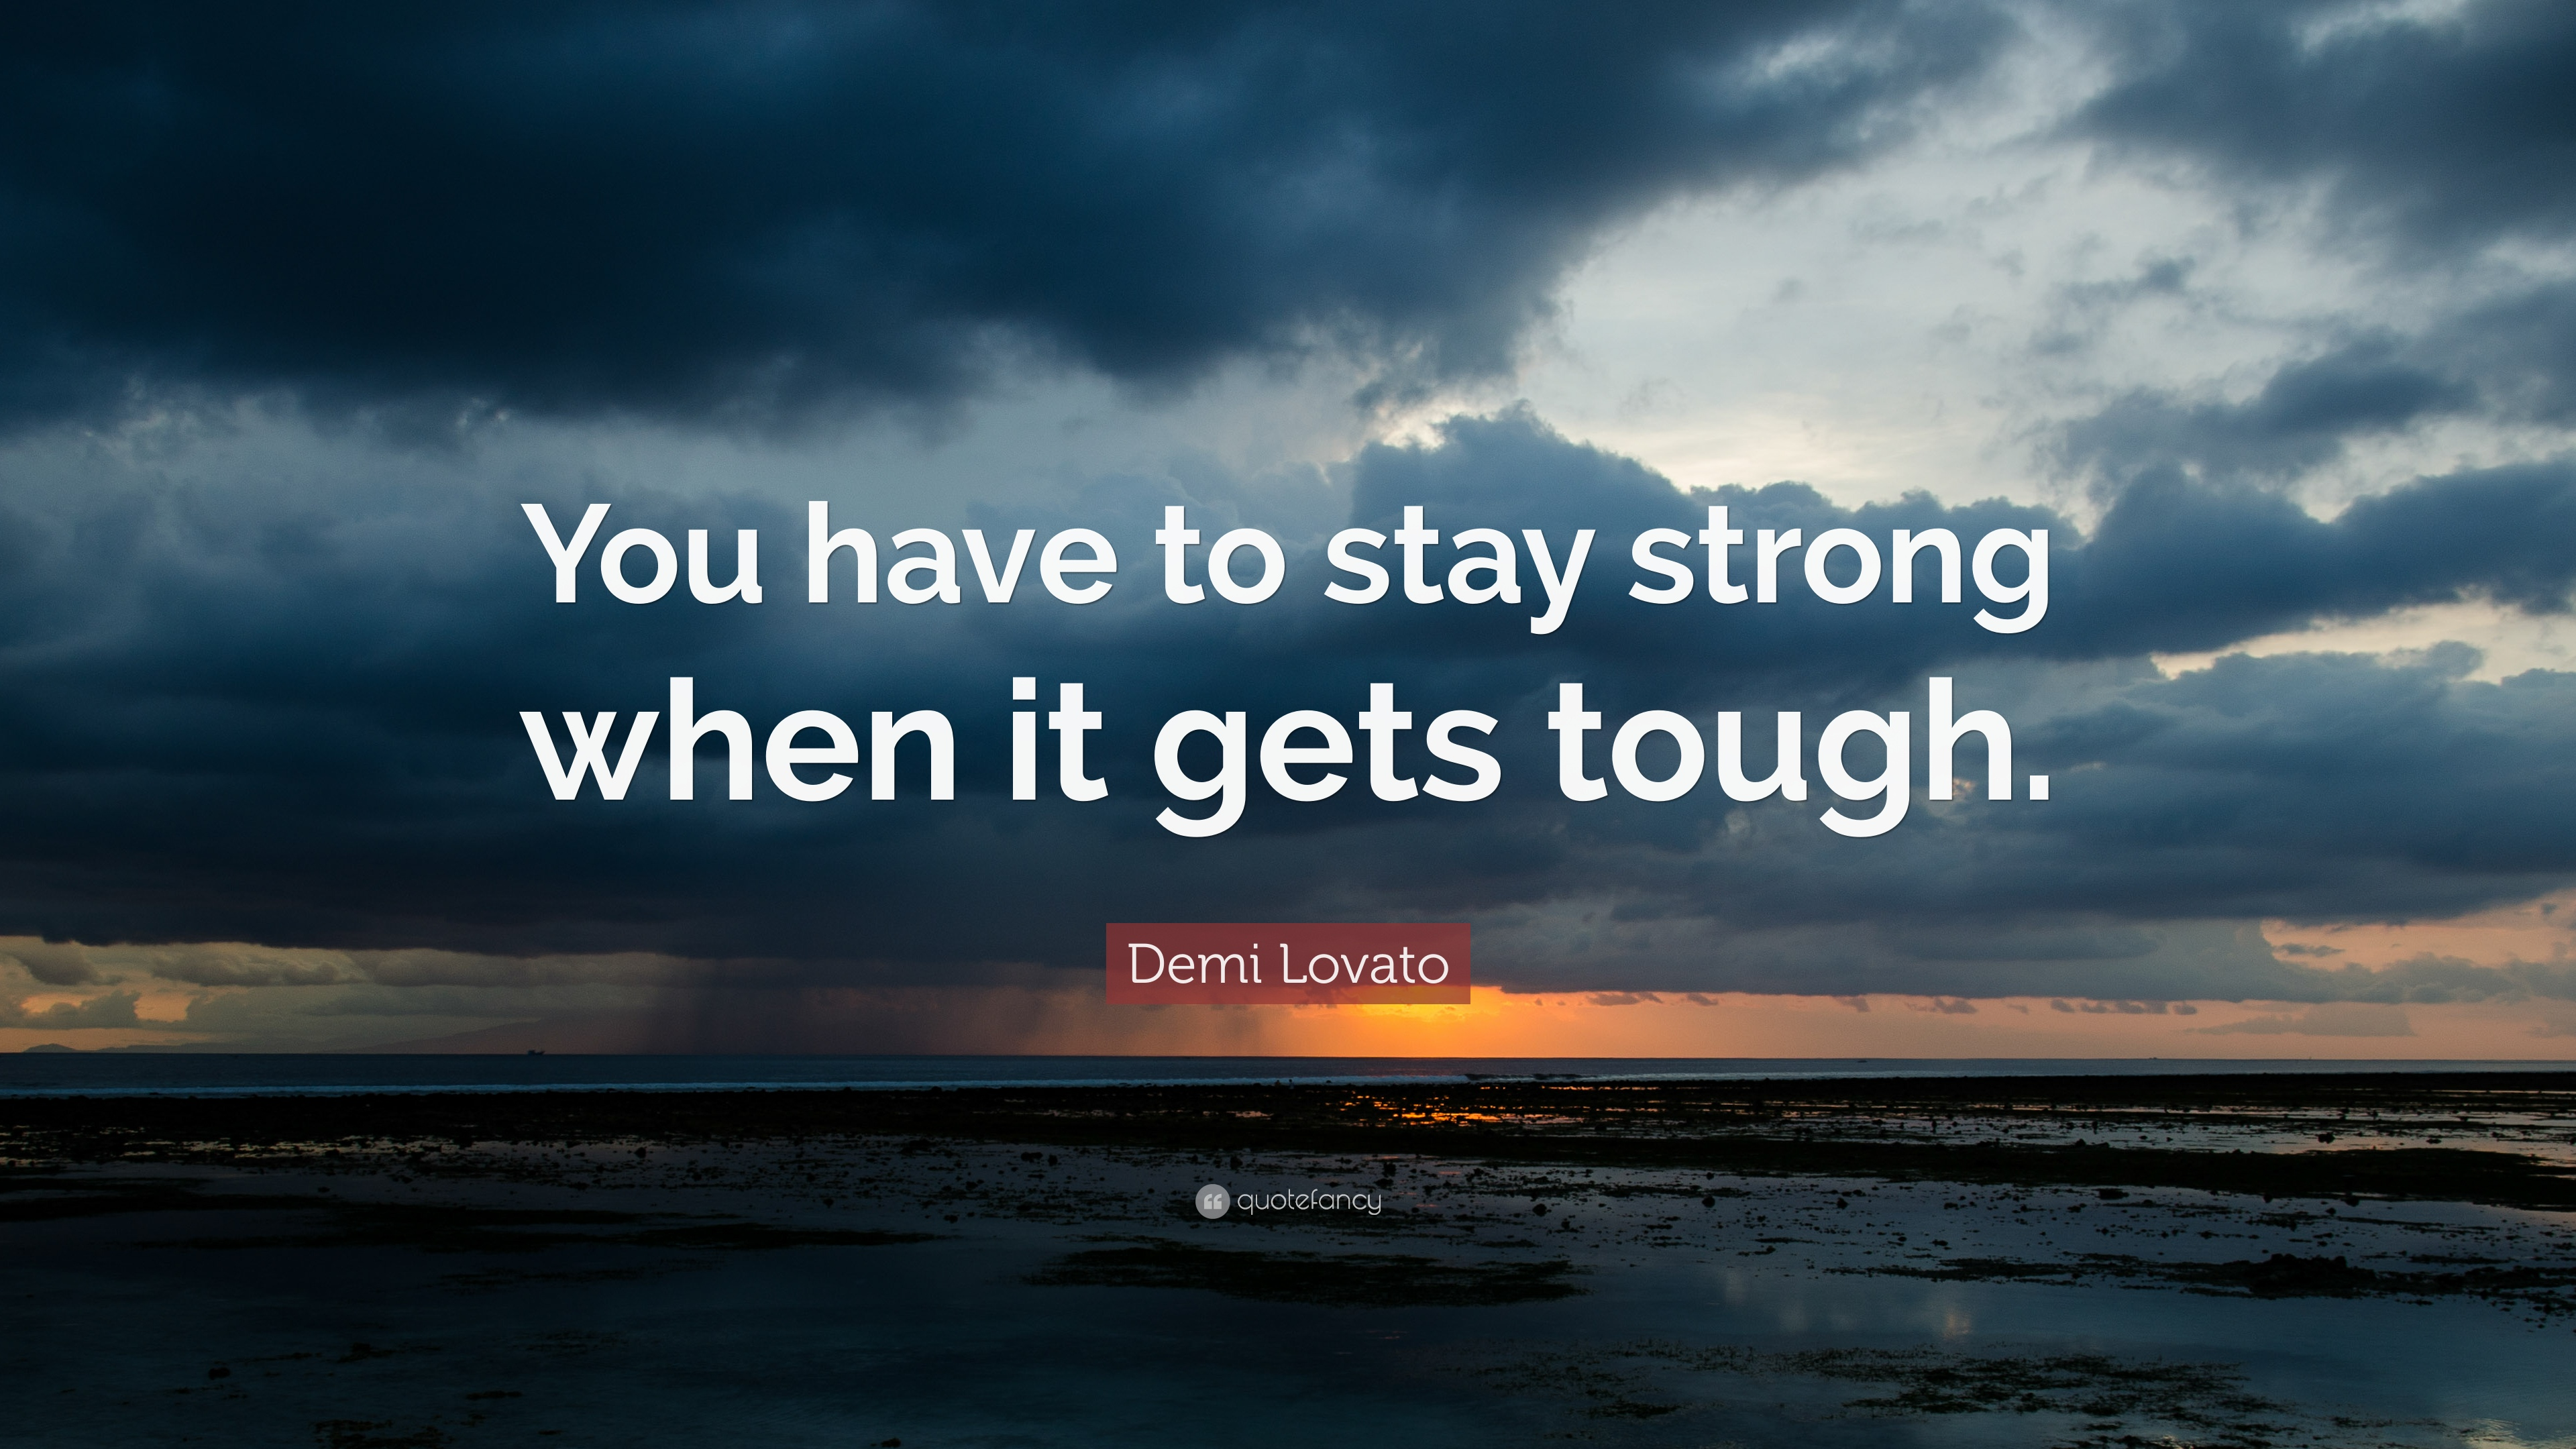 Demi lovato quote you have to stay strong when it gets tough 18 wallpapers demi lovato quote you have to stay strong voltagebd Images